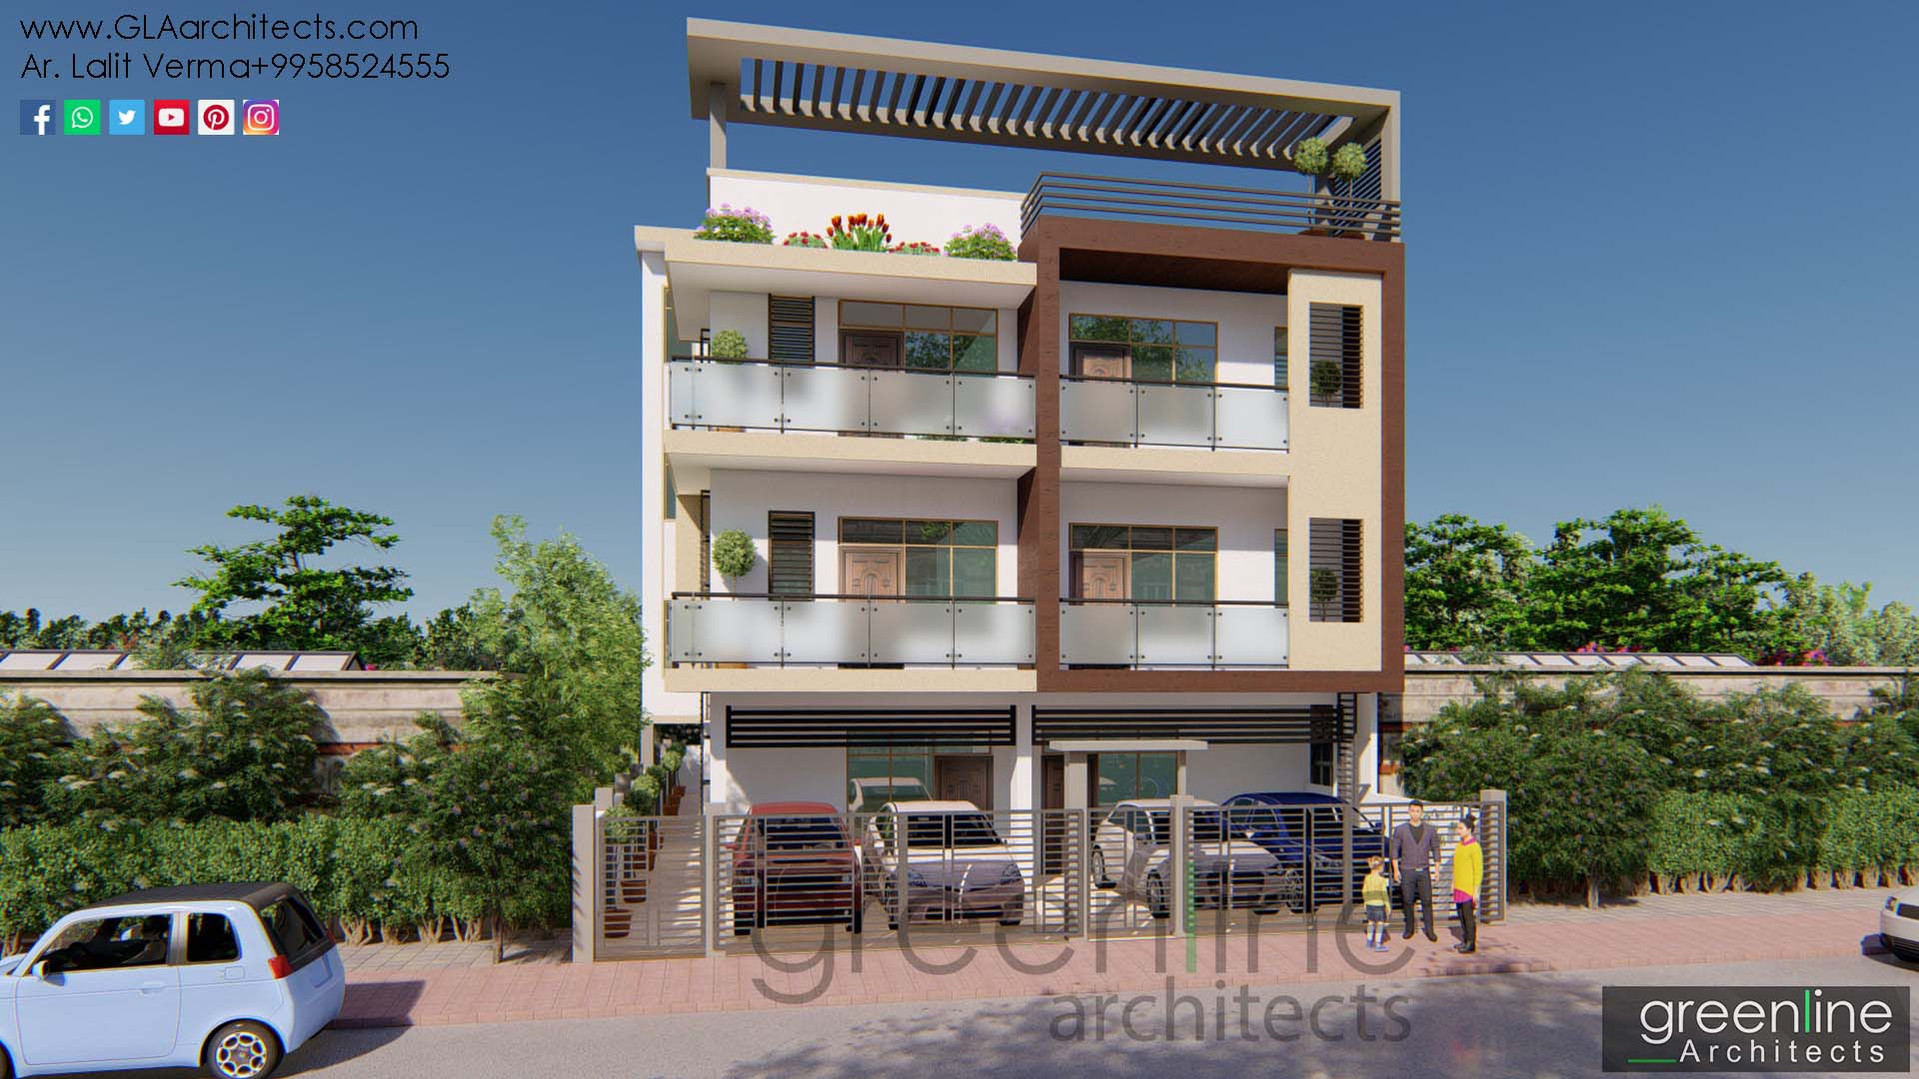 40X80 feet House Design in Lucknow (2).j40 X 80 feet House Design in Lucknow